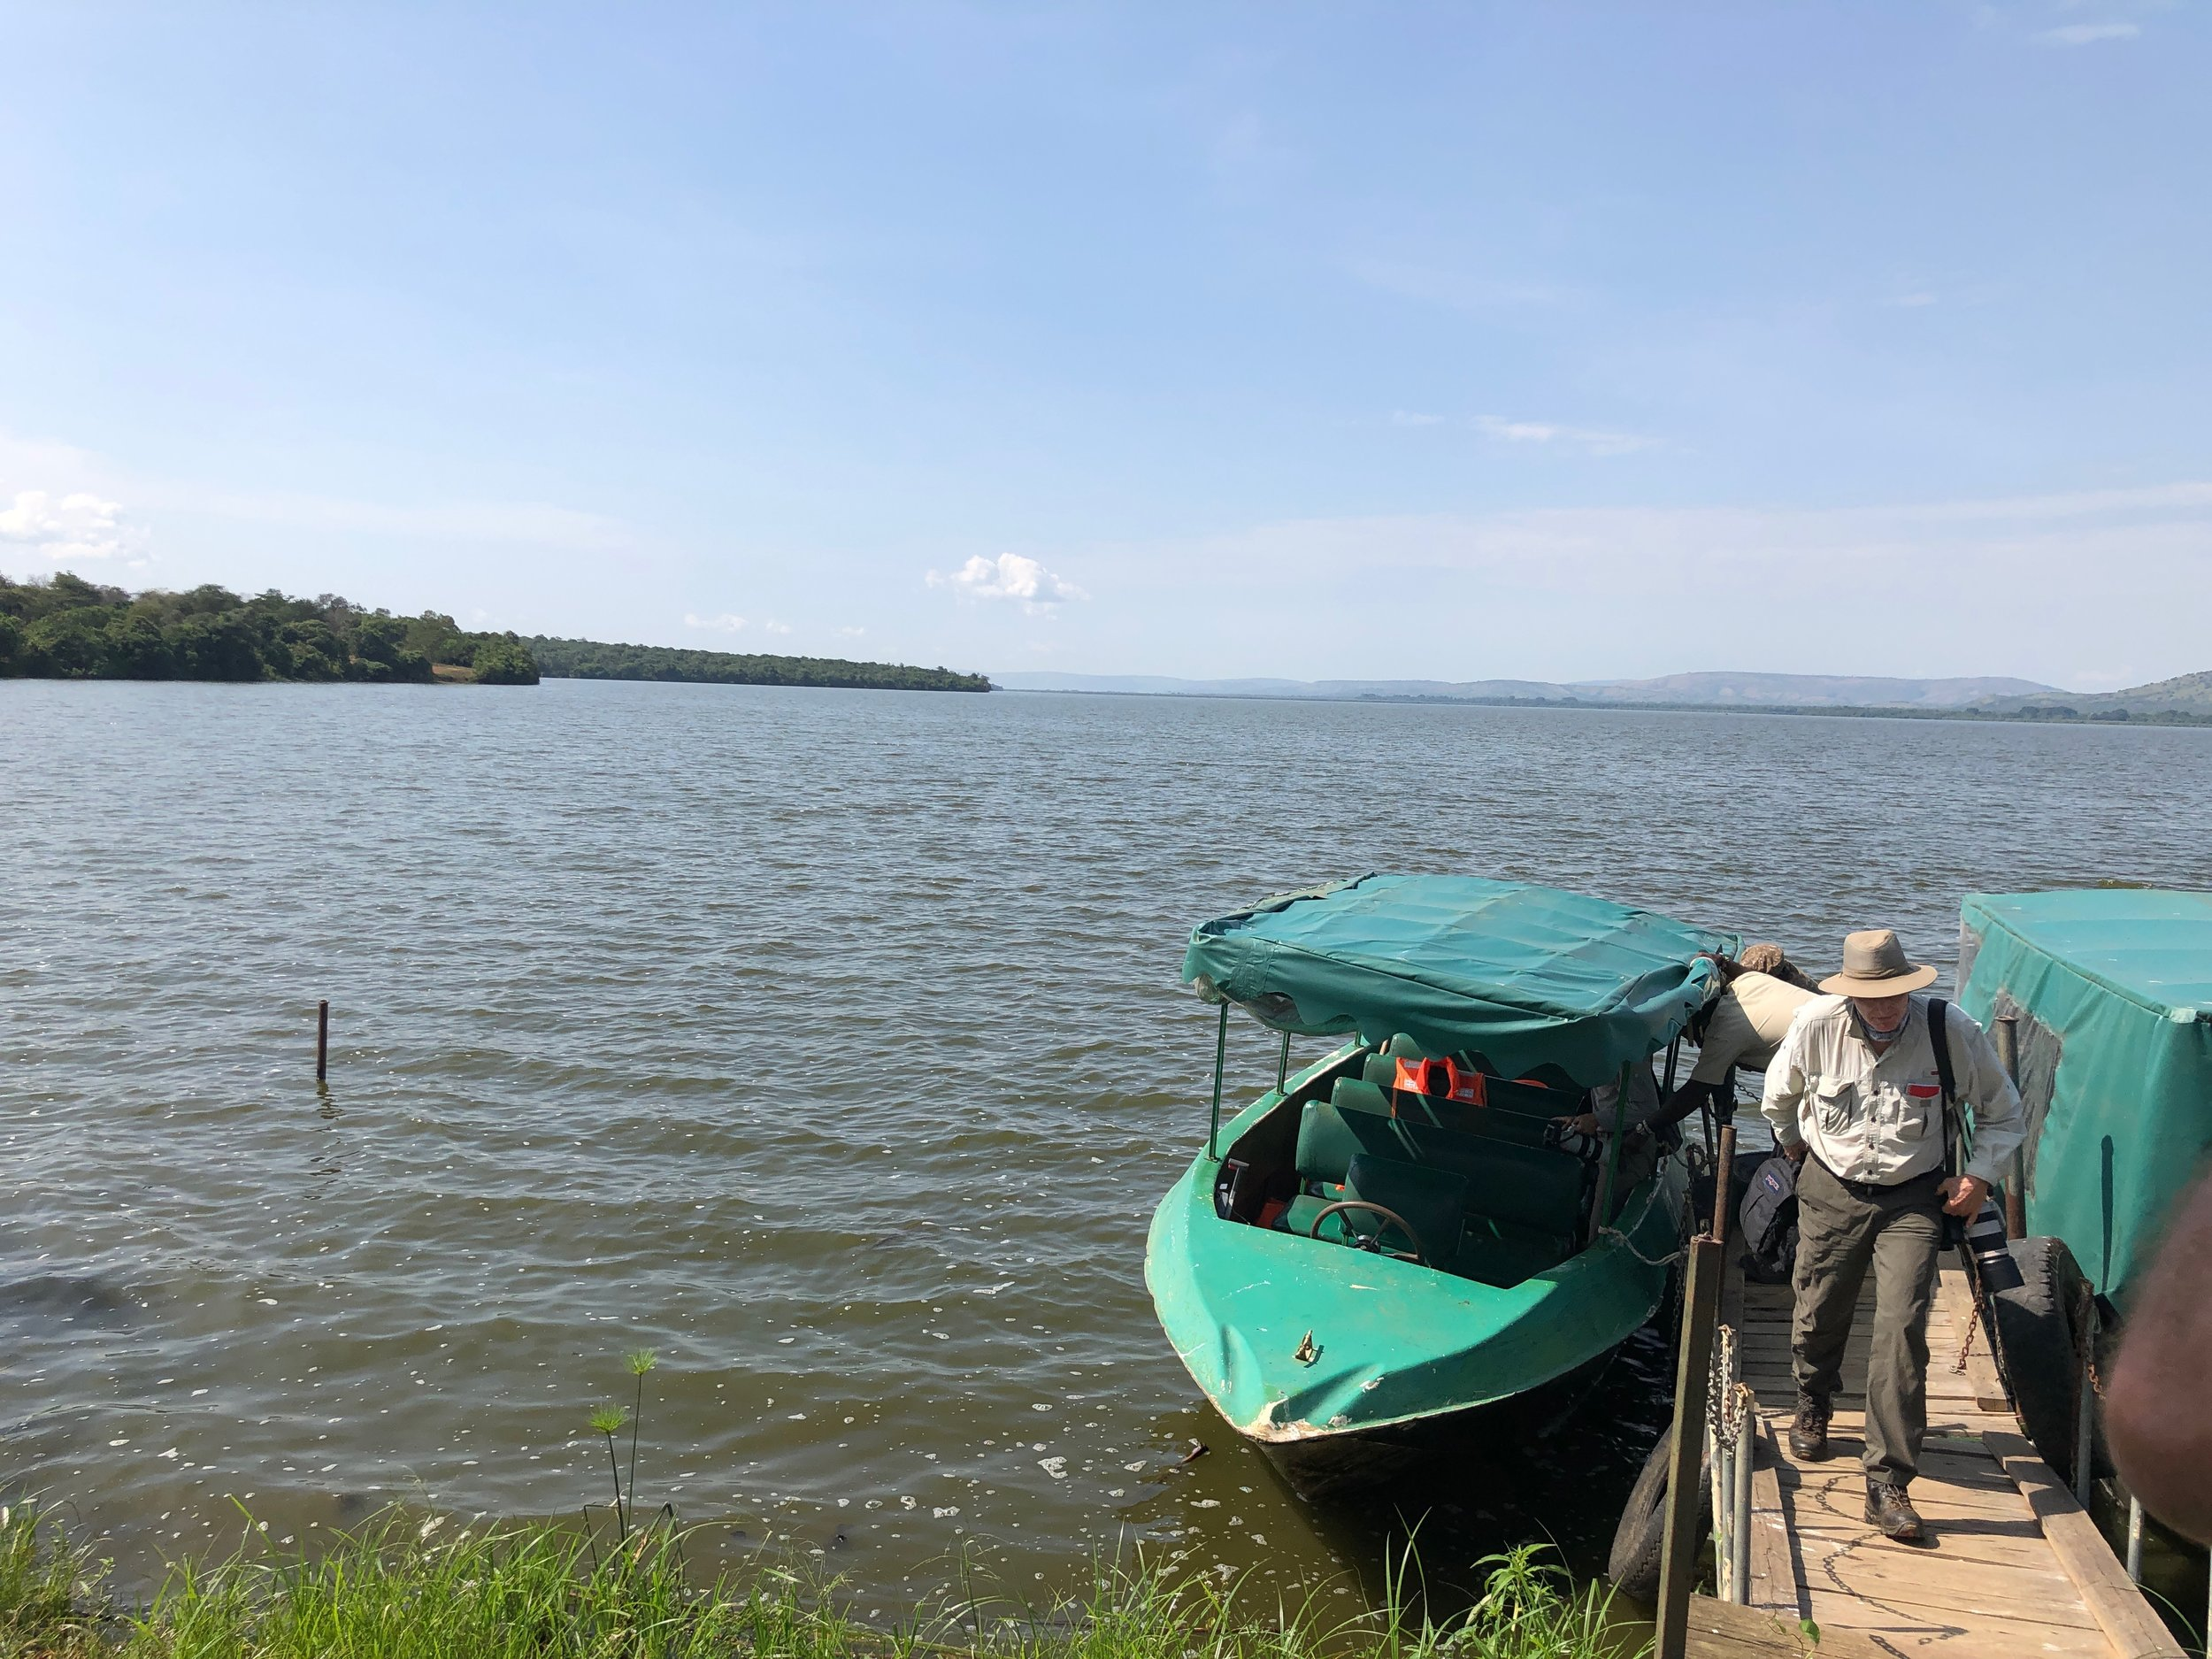 The boats we would take to explore Lake Mburo.